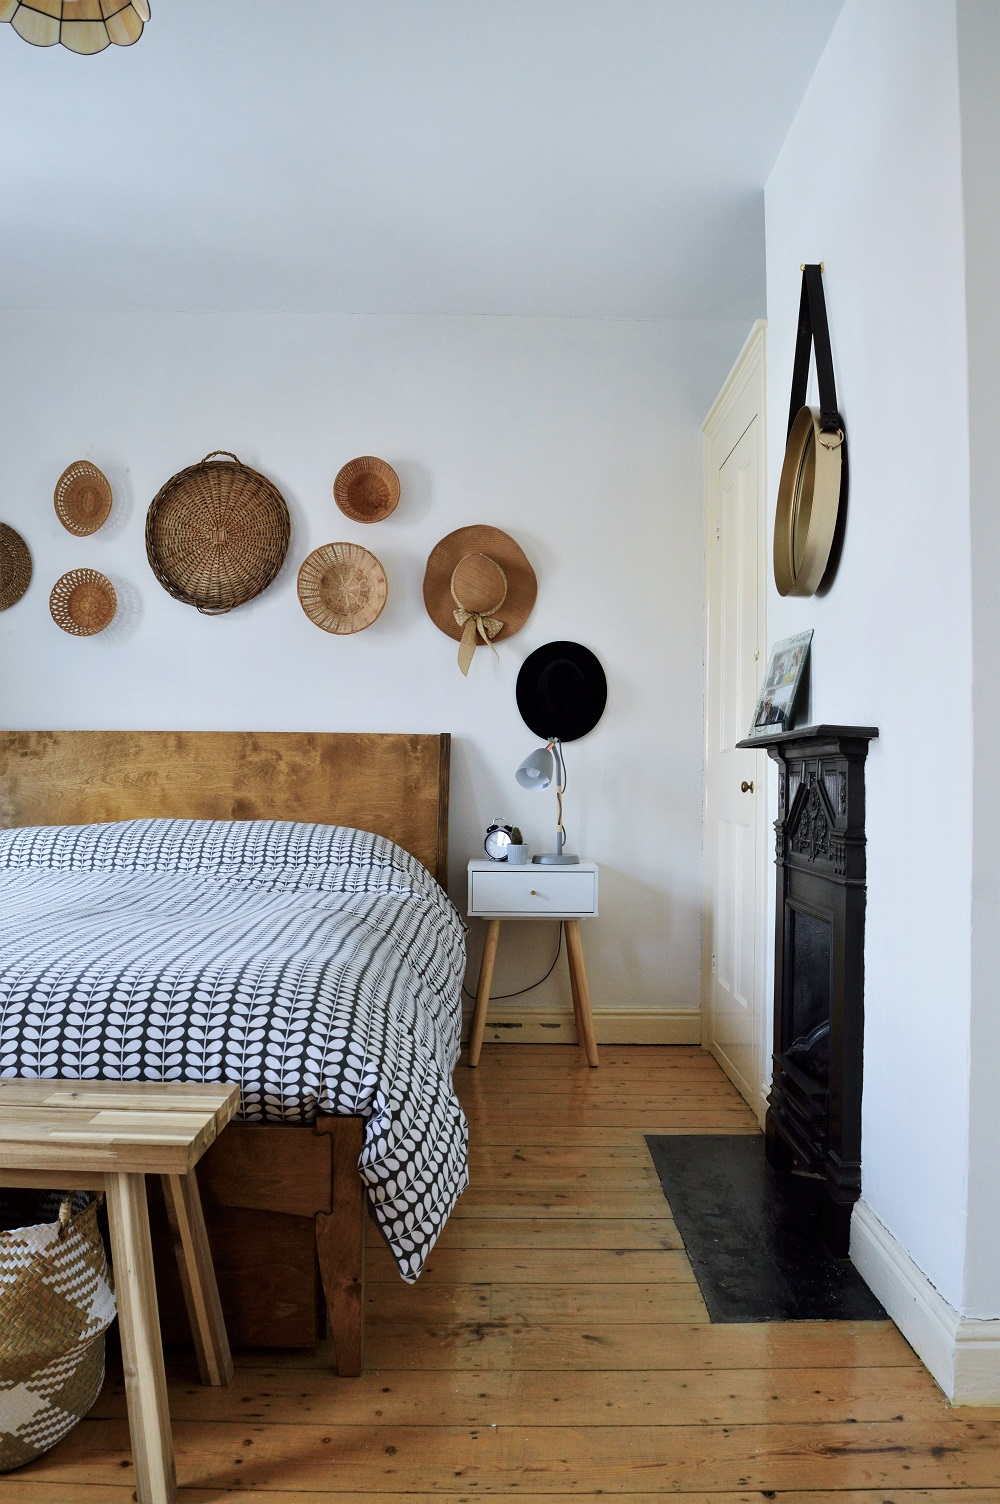 Bedroom - bed with basket gallery wall